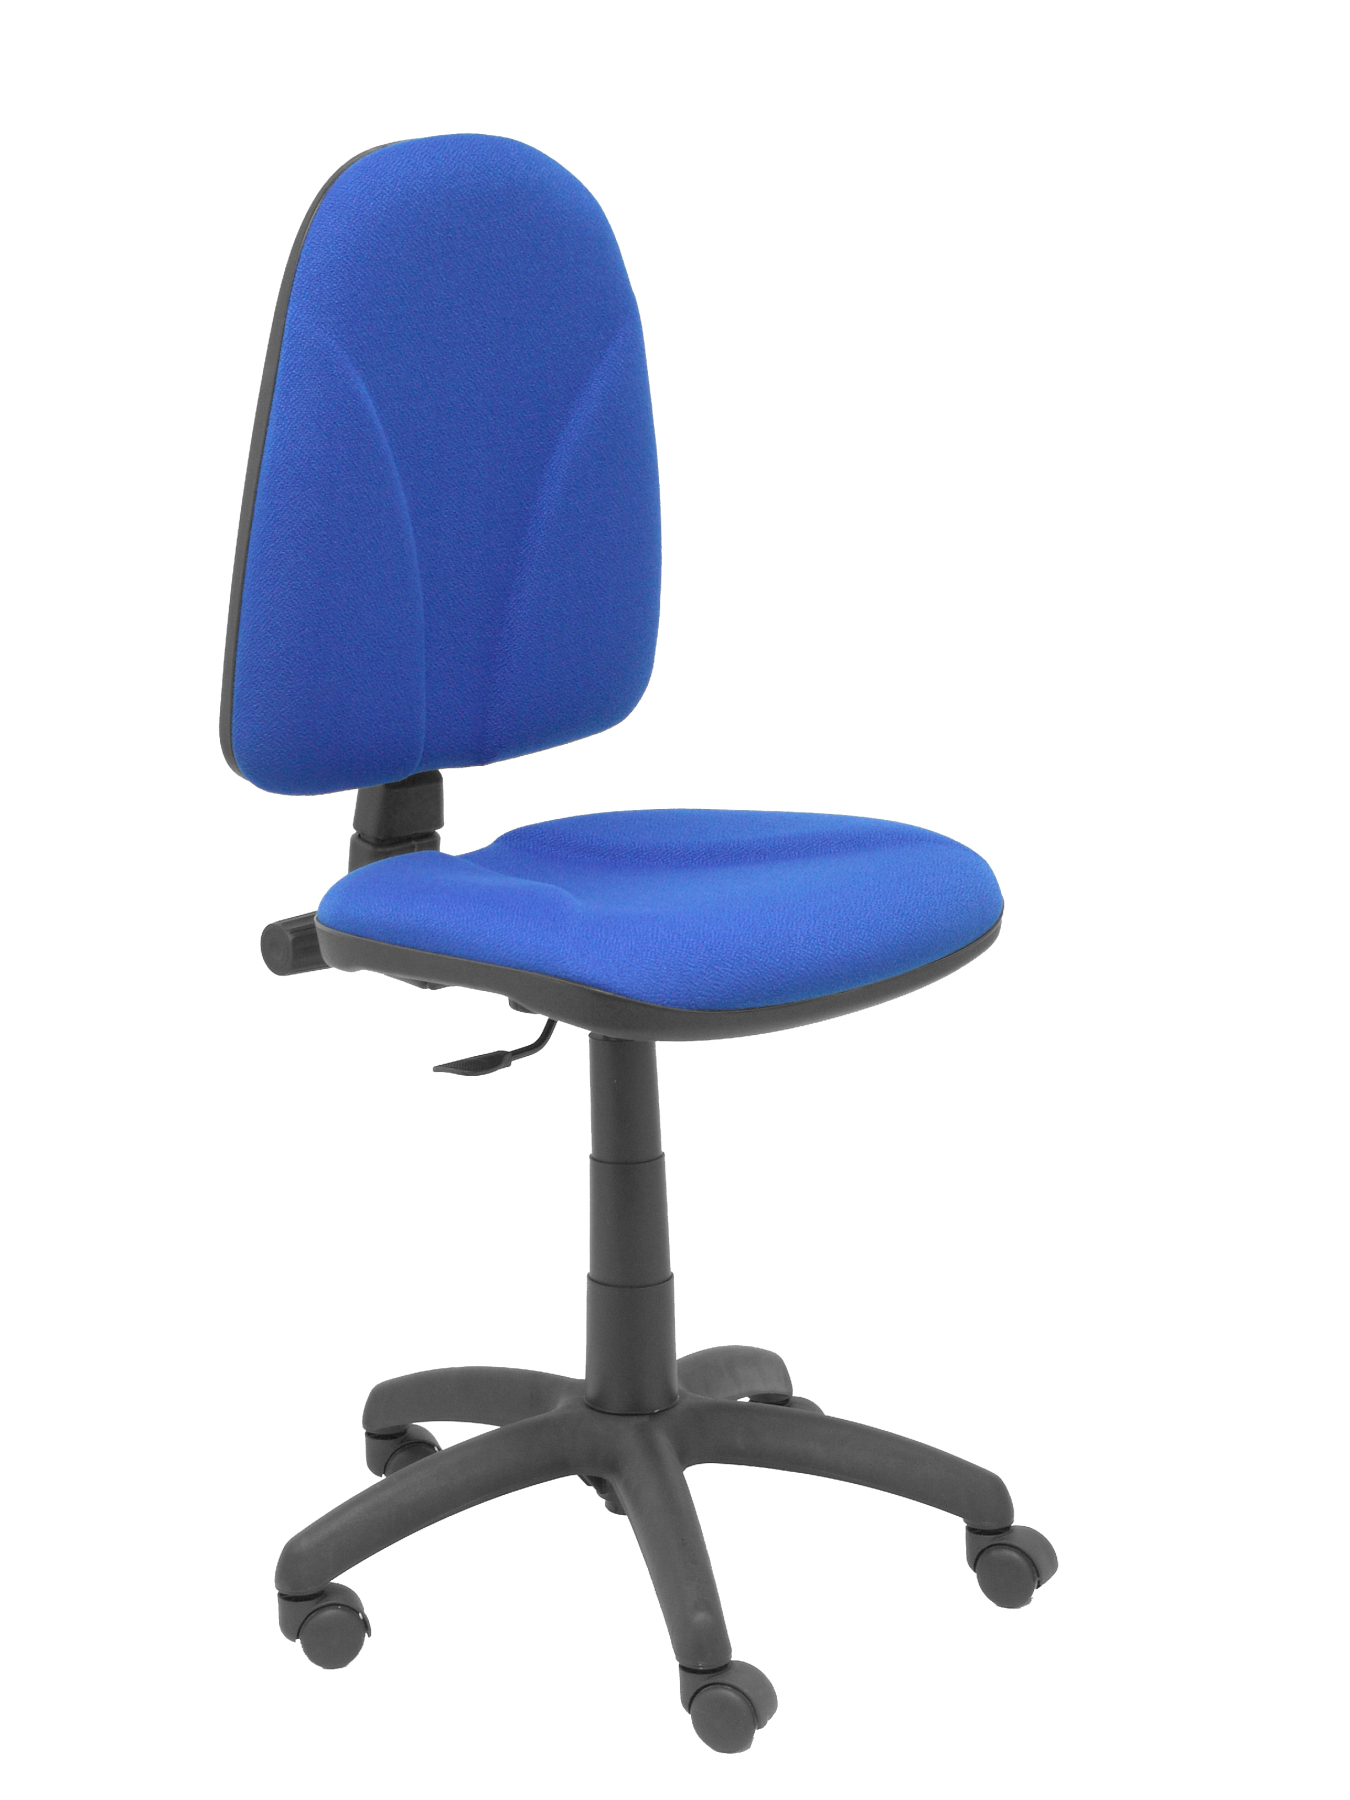 Ergonomic Office Chair And Anatomical With Mechanism Permanent Contact And Adjustable Height-Seat And Respald